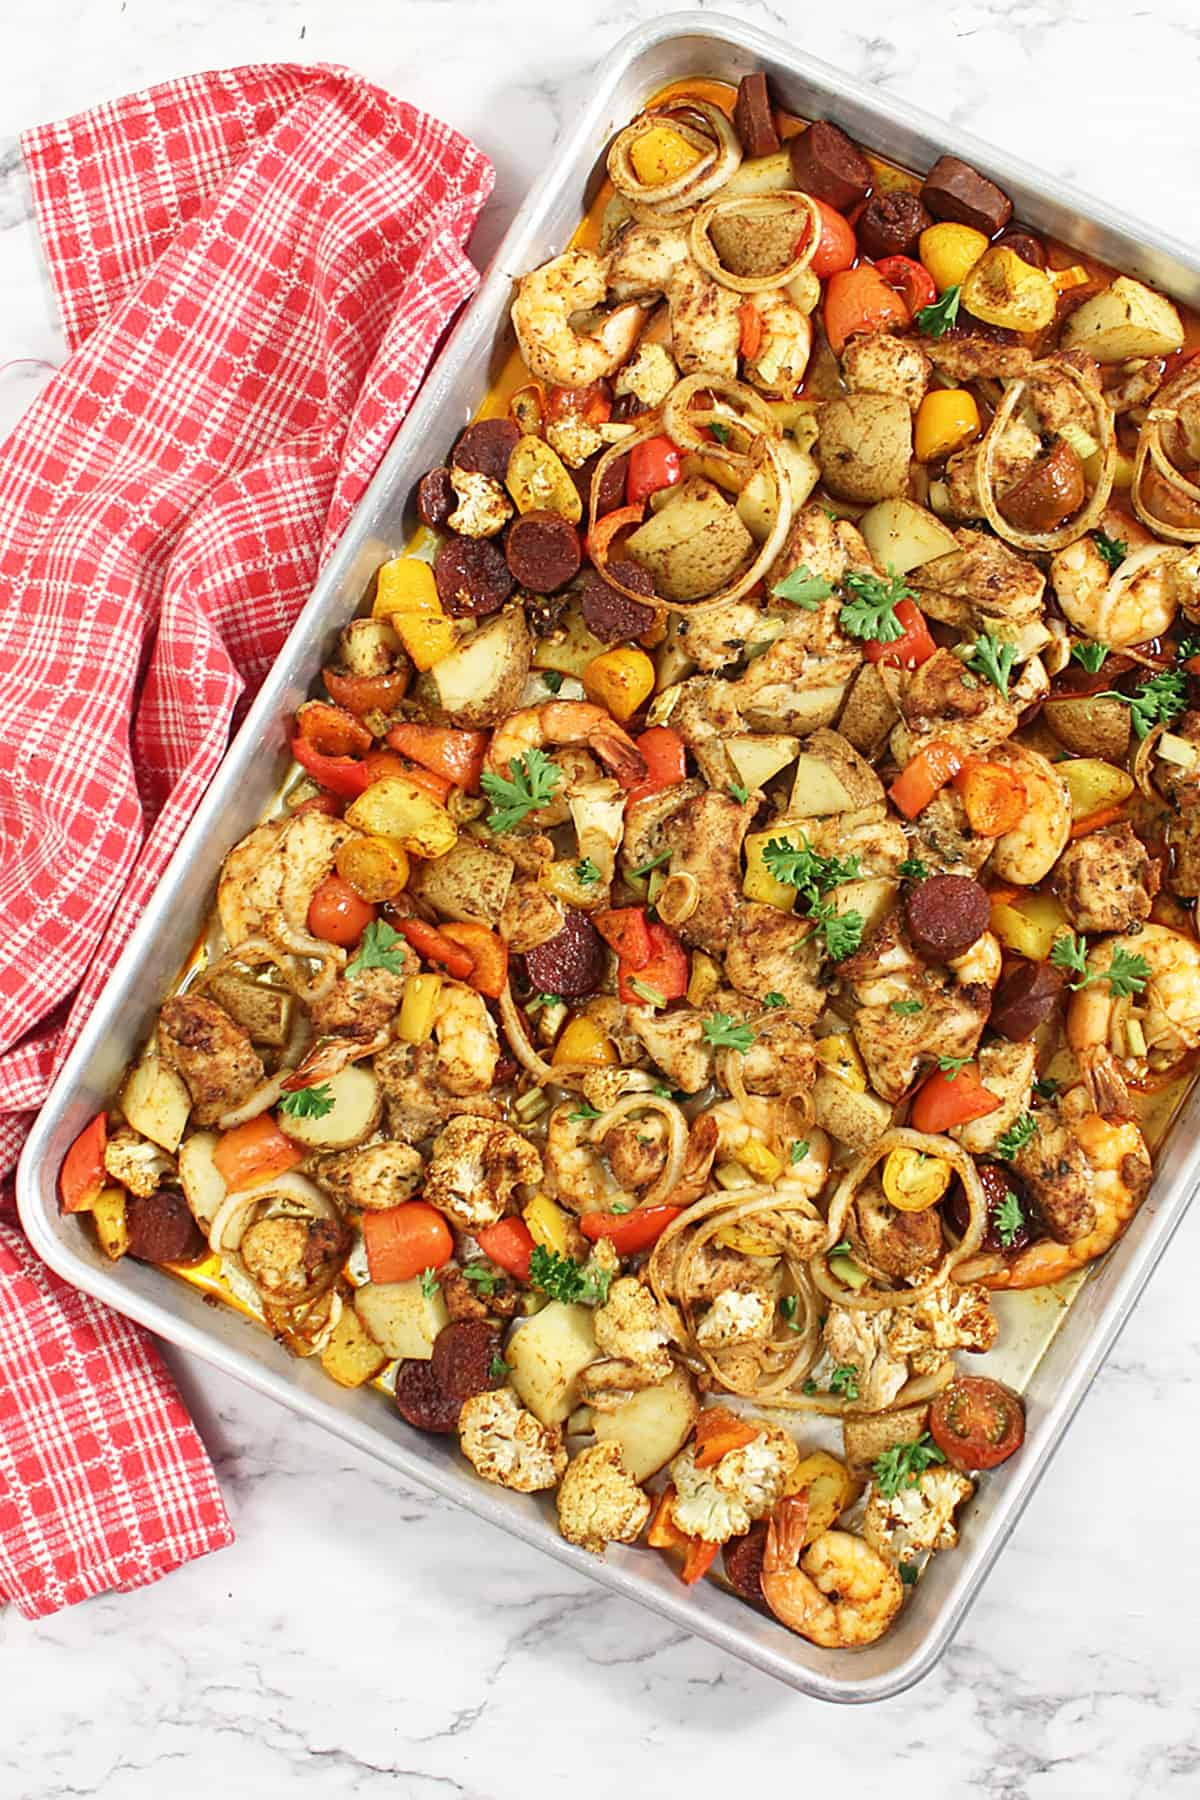 Overhead of creole chicken and shrimp sheet pan dinner on cookie sheet.